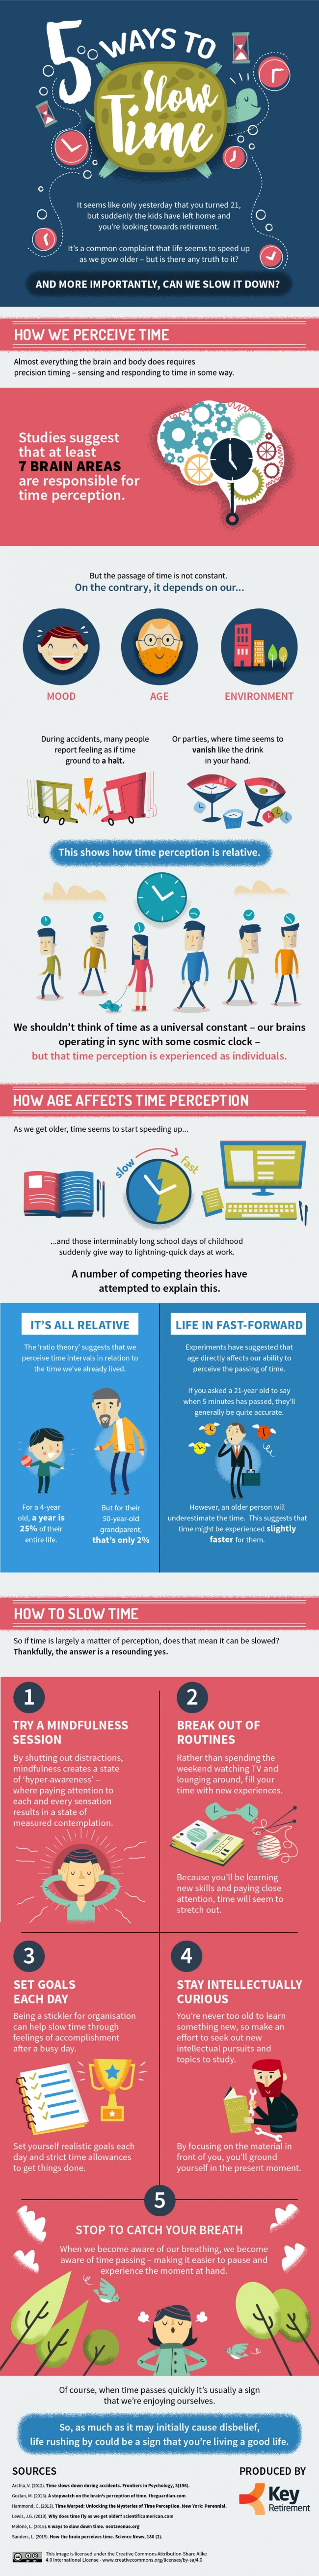 Ways-to-Slow-Down-Time